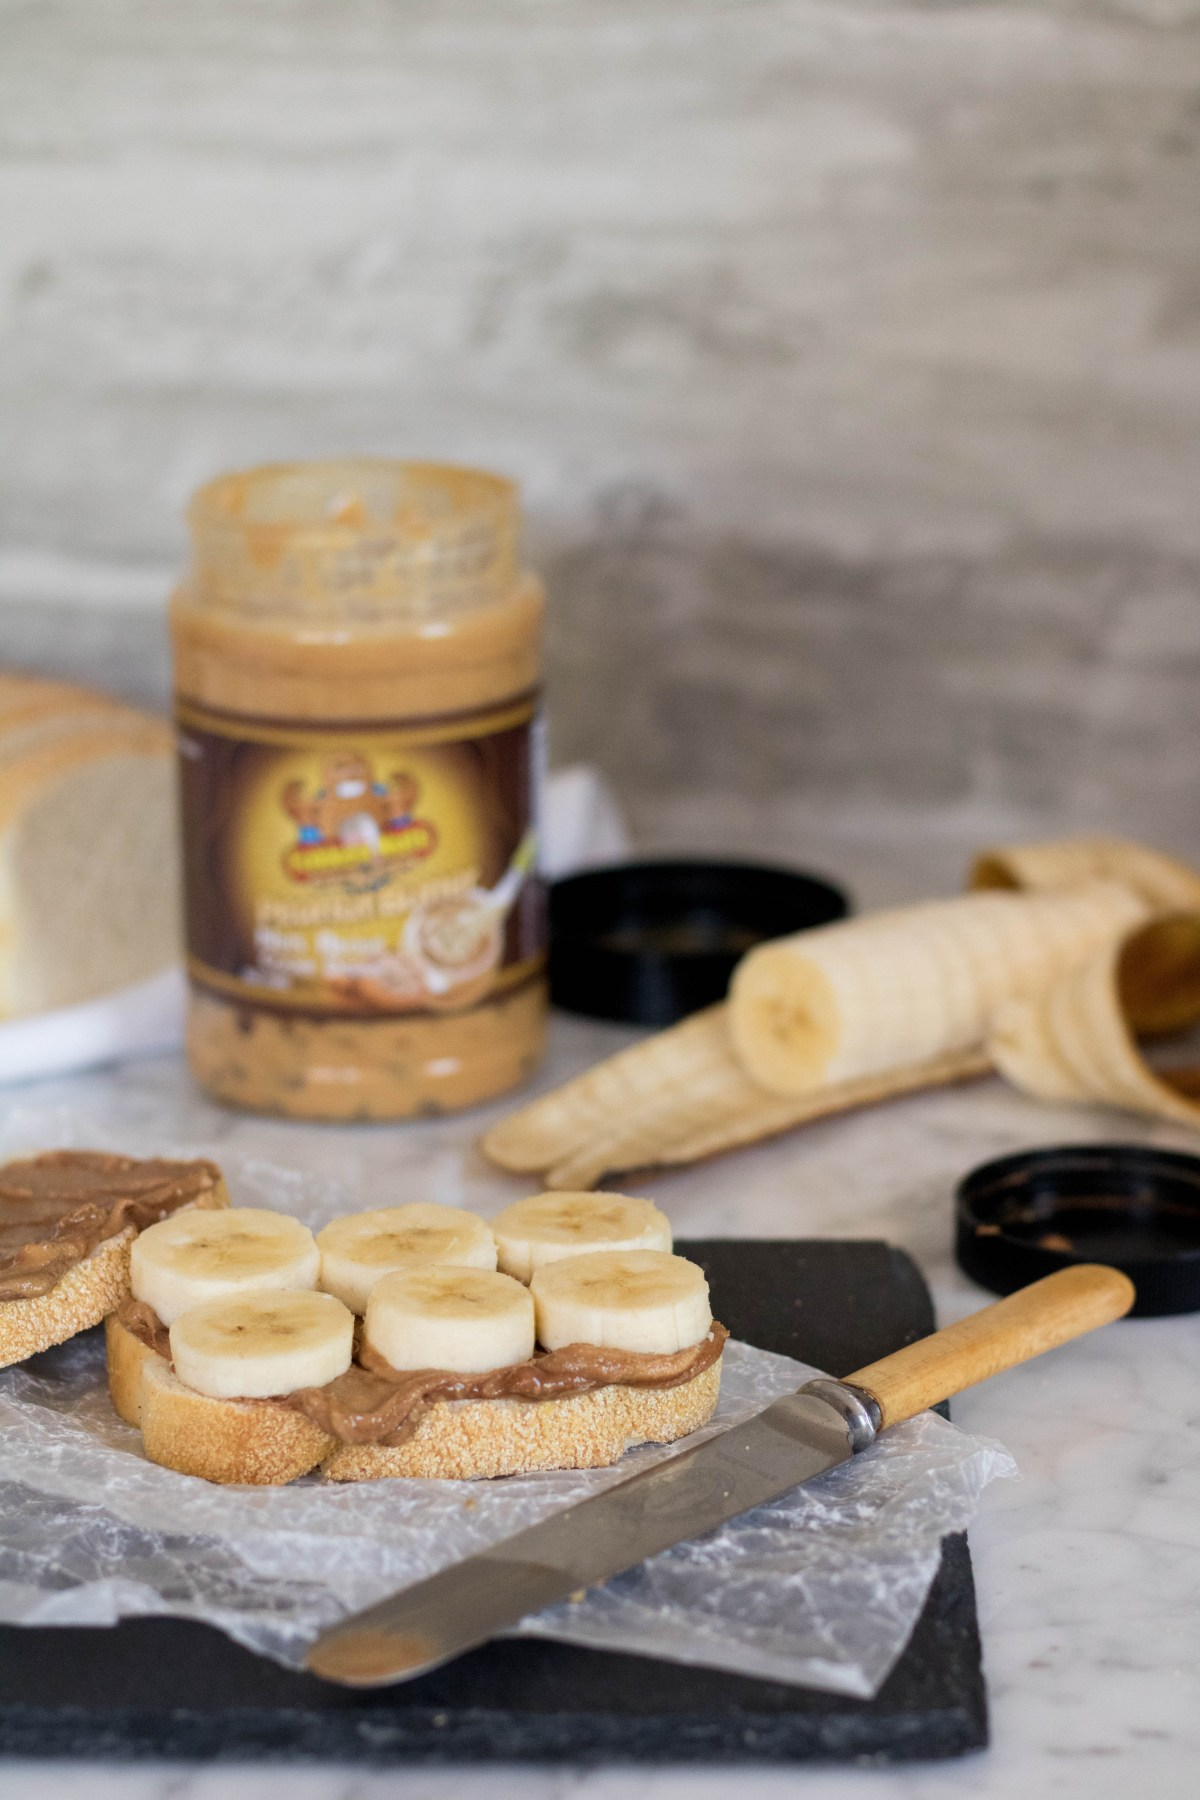 How to make the grilled peanut butter banana sandwich